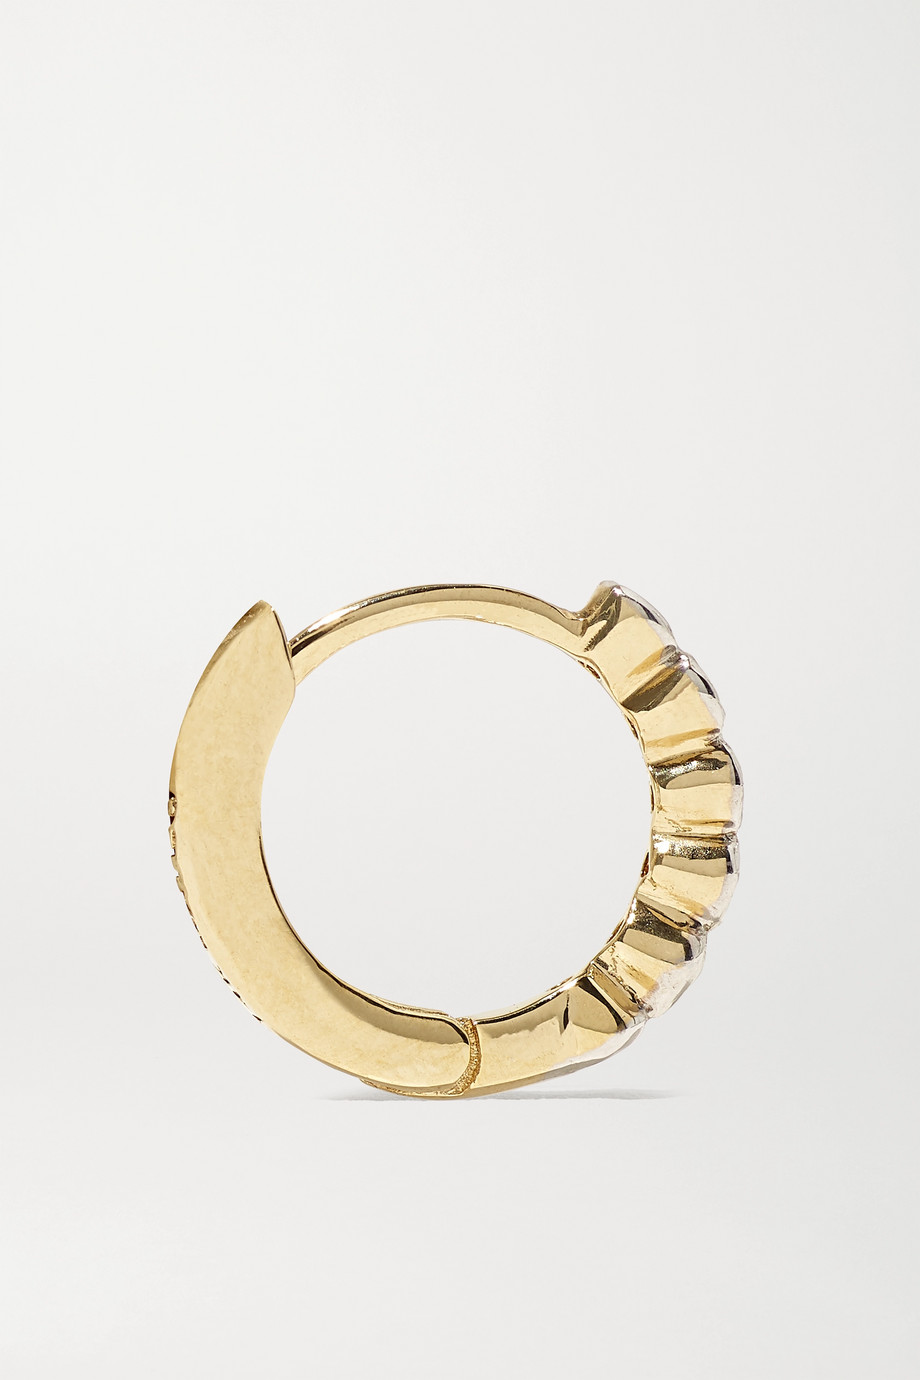 Mateo 14-karat gold diamond hoop earrings